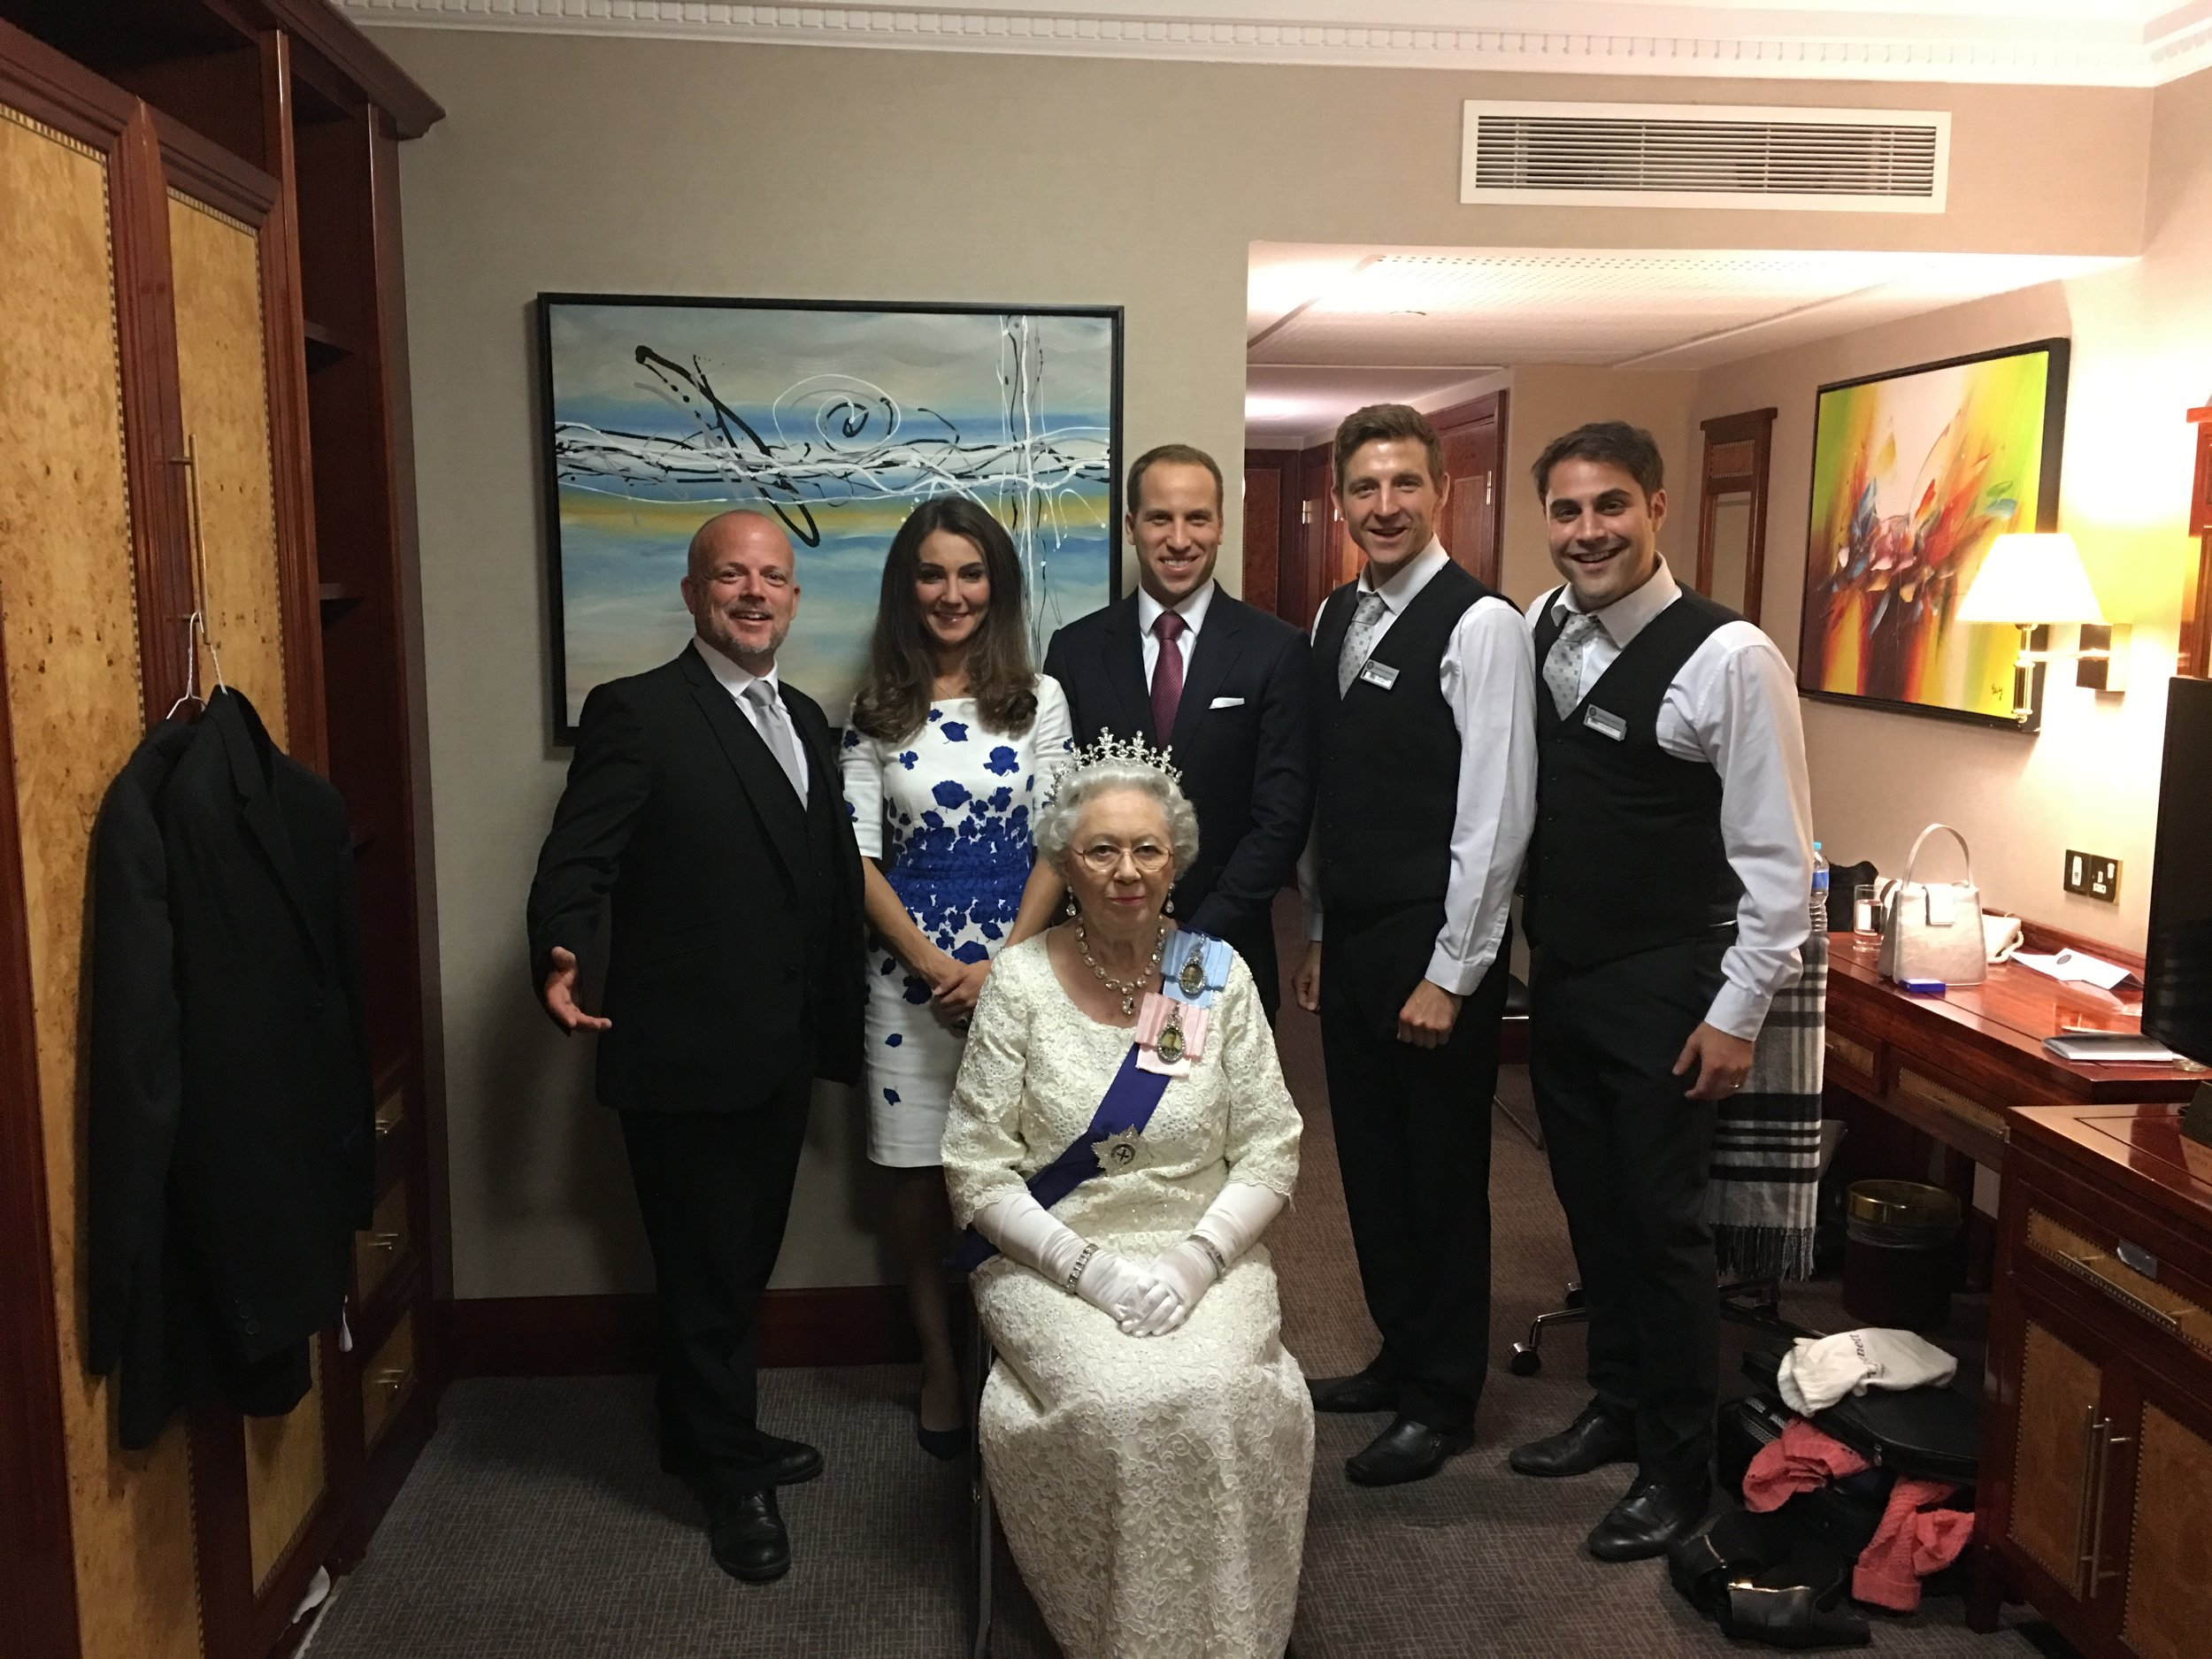 The Three Waiters and the fake Royals